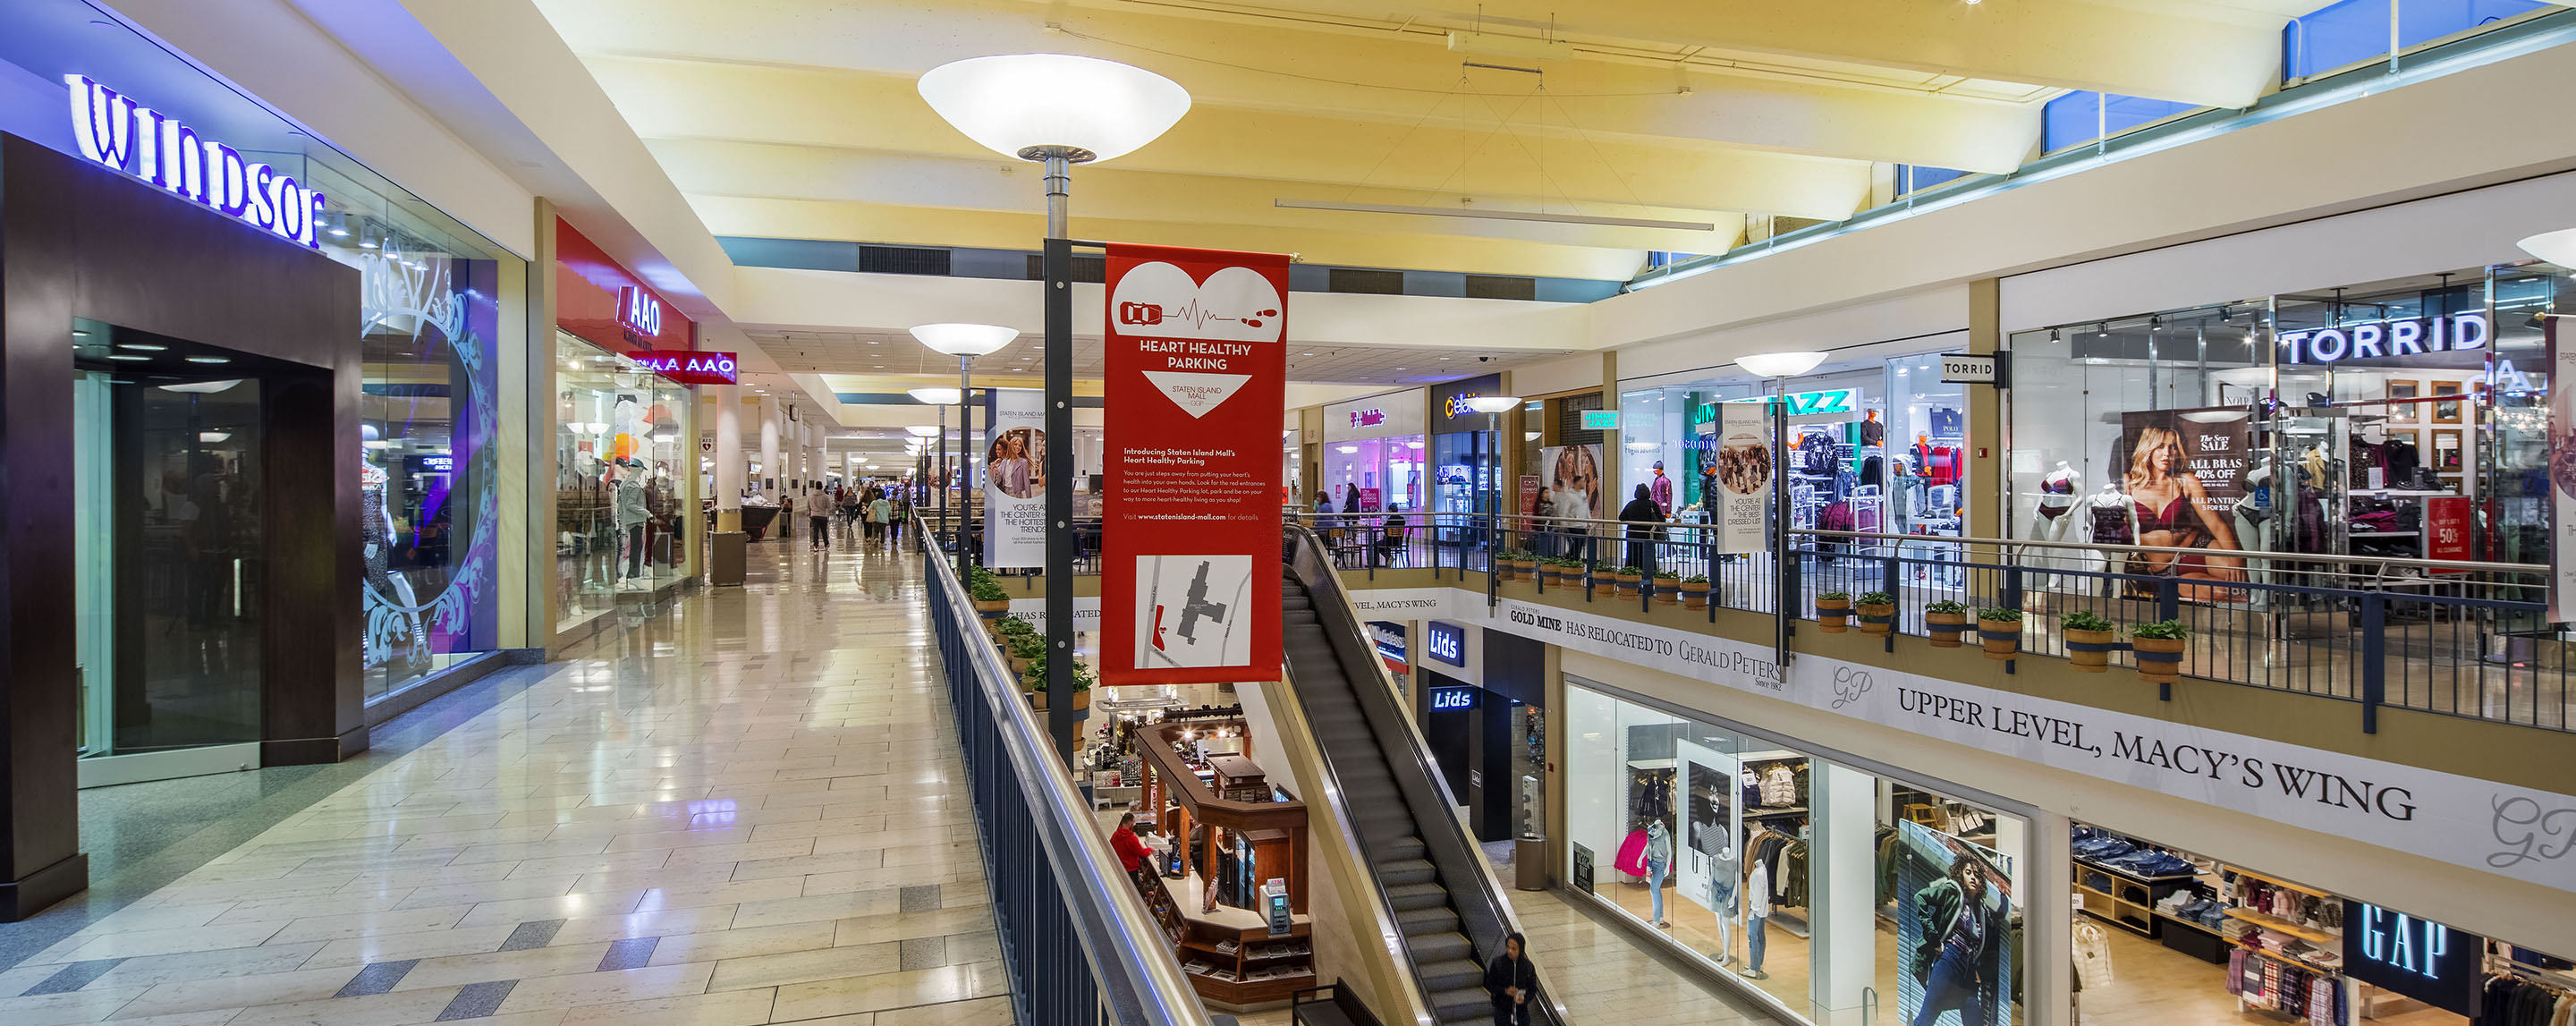 An indoor multilevel mall with an escalator featuring stores by GAP, Lids, and TORRID.